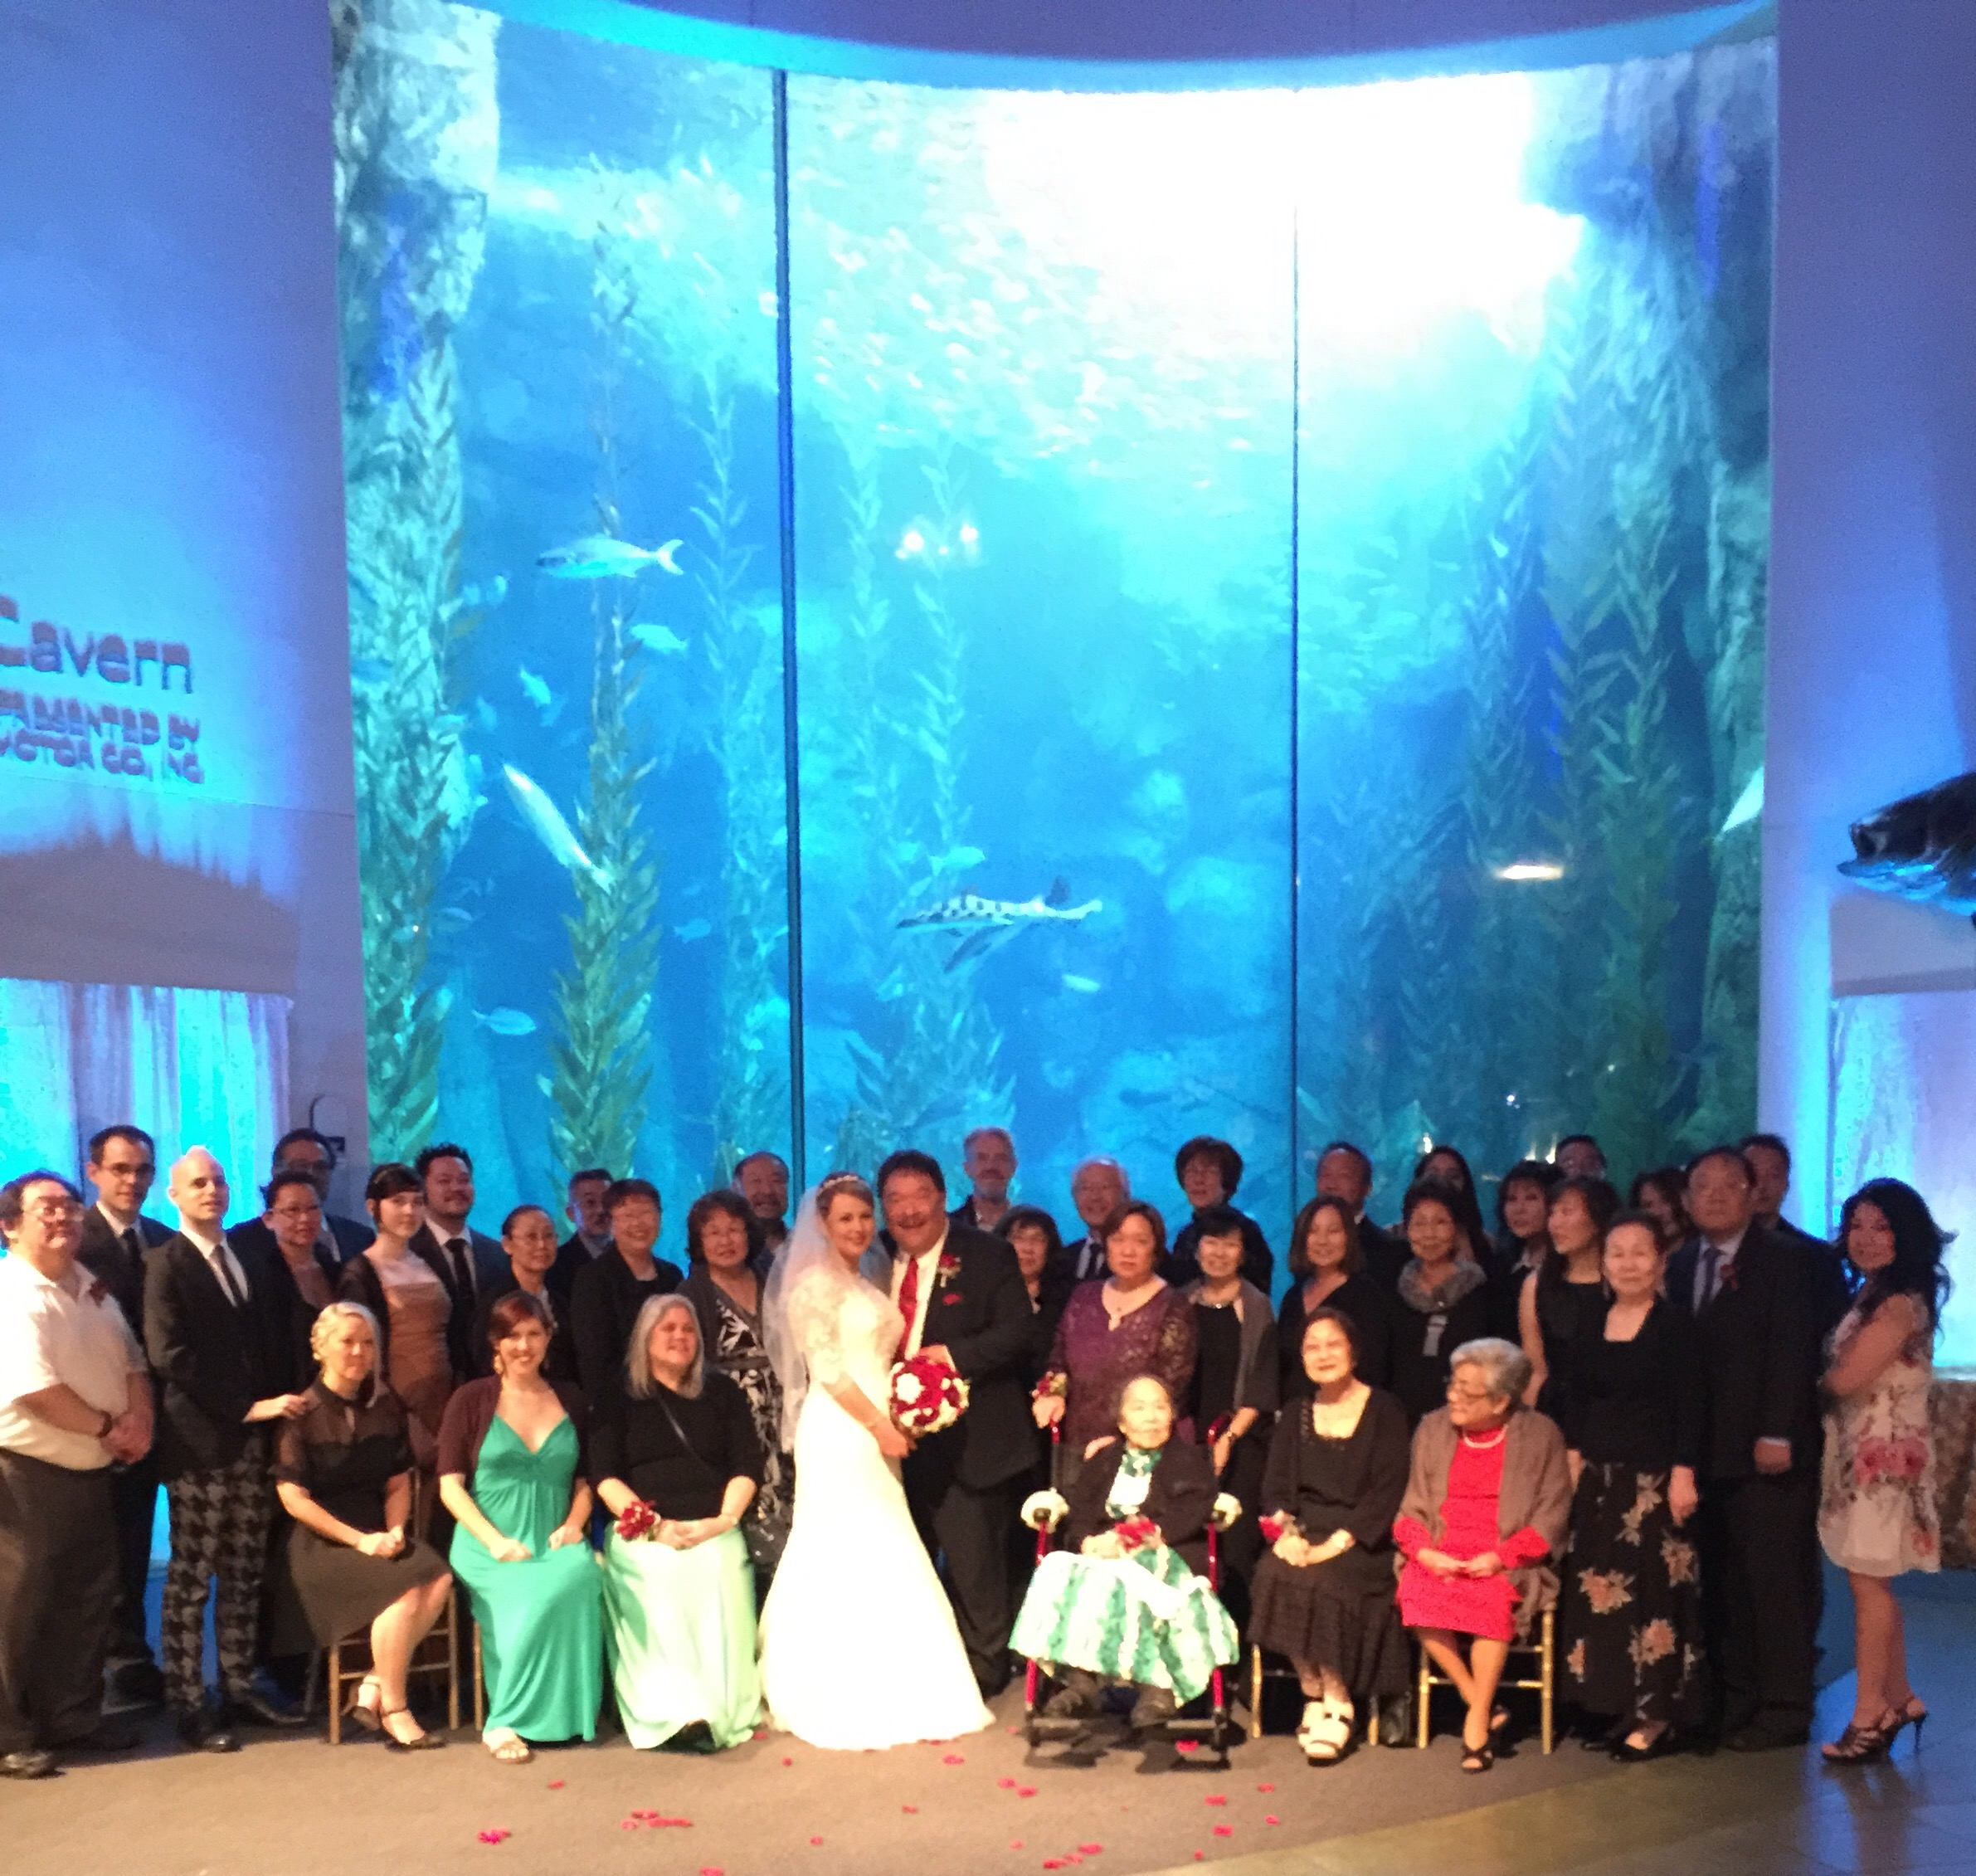 Long Beach Wedding Ceremony Only: Wedding At The Aquarium Of The Pacific In Long Beach